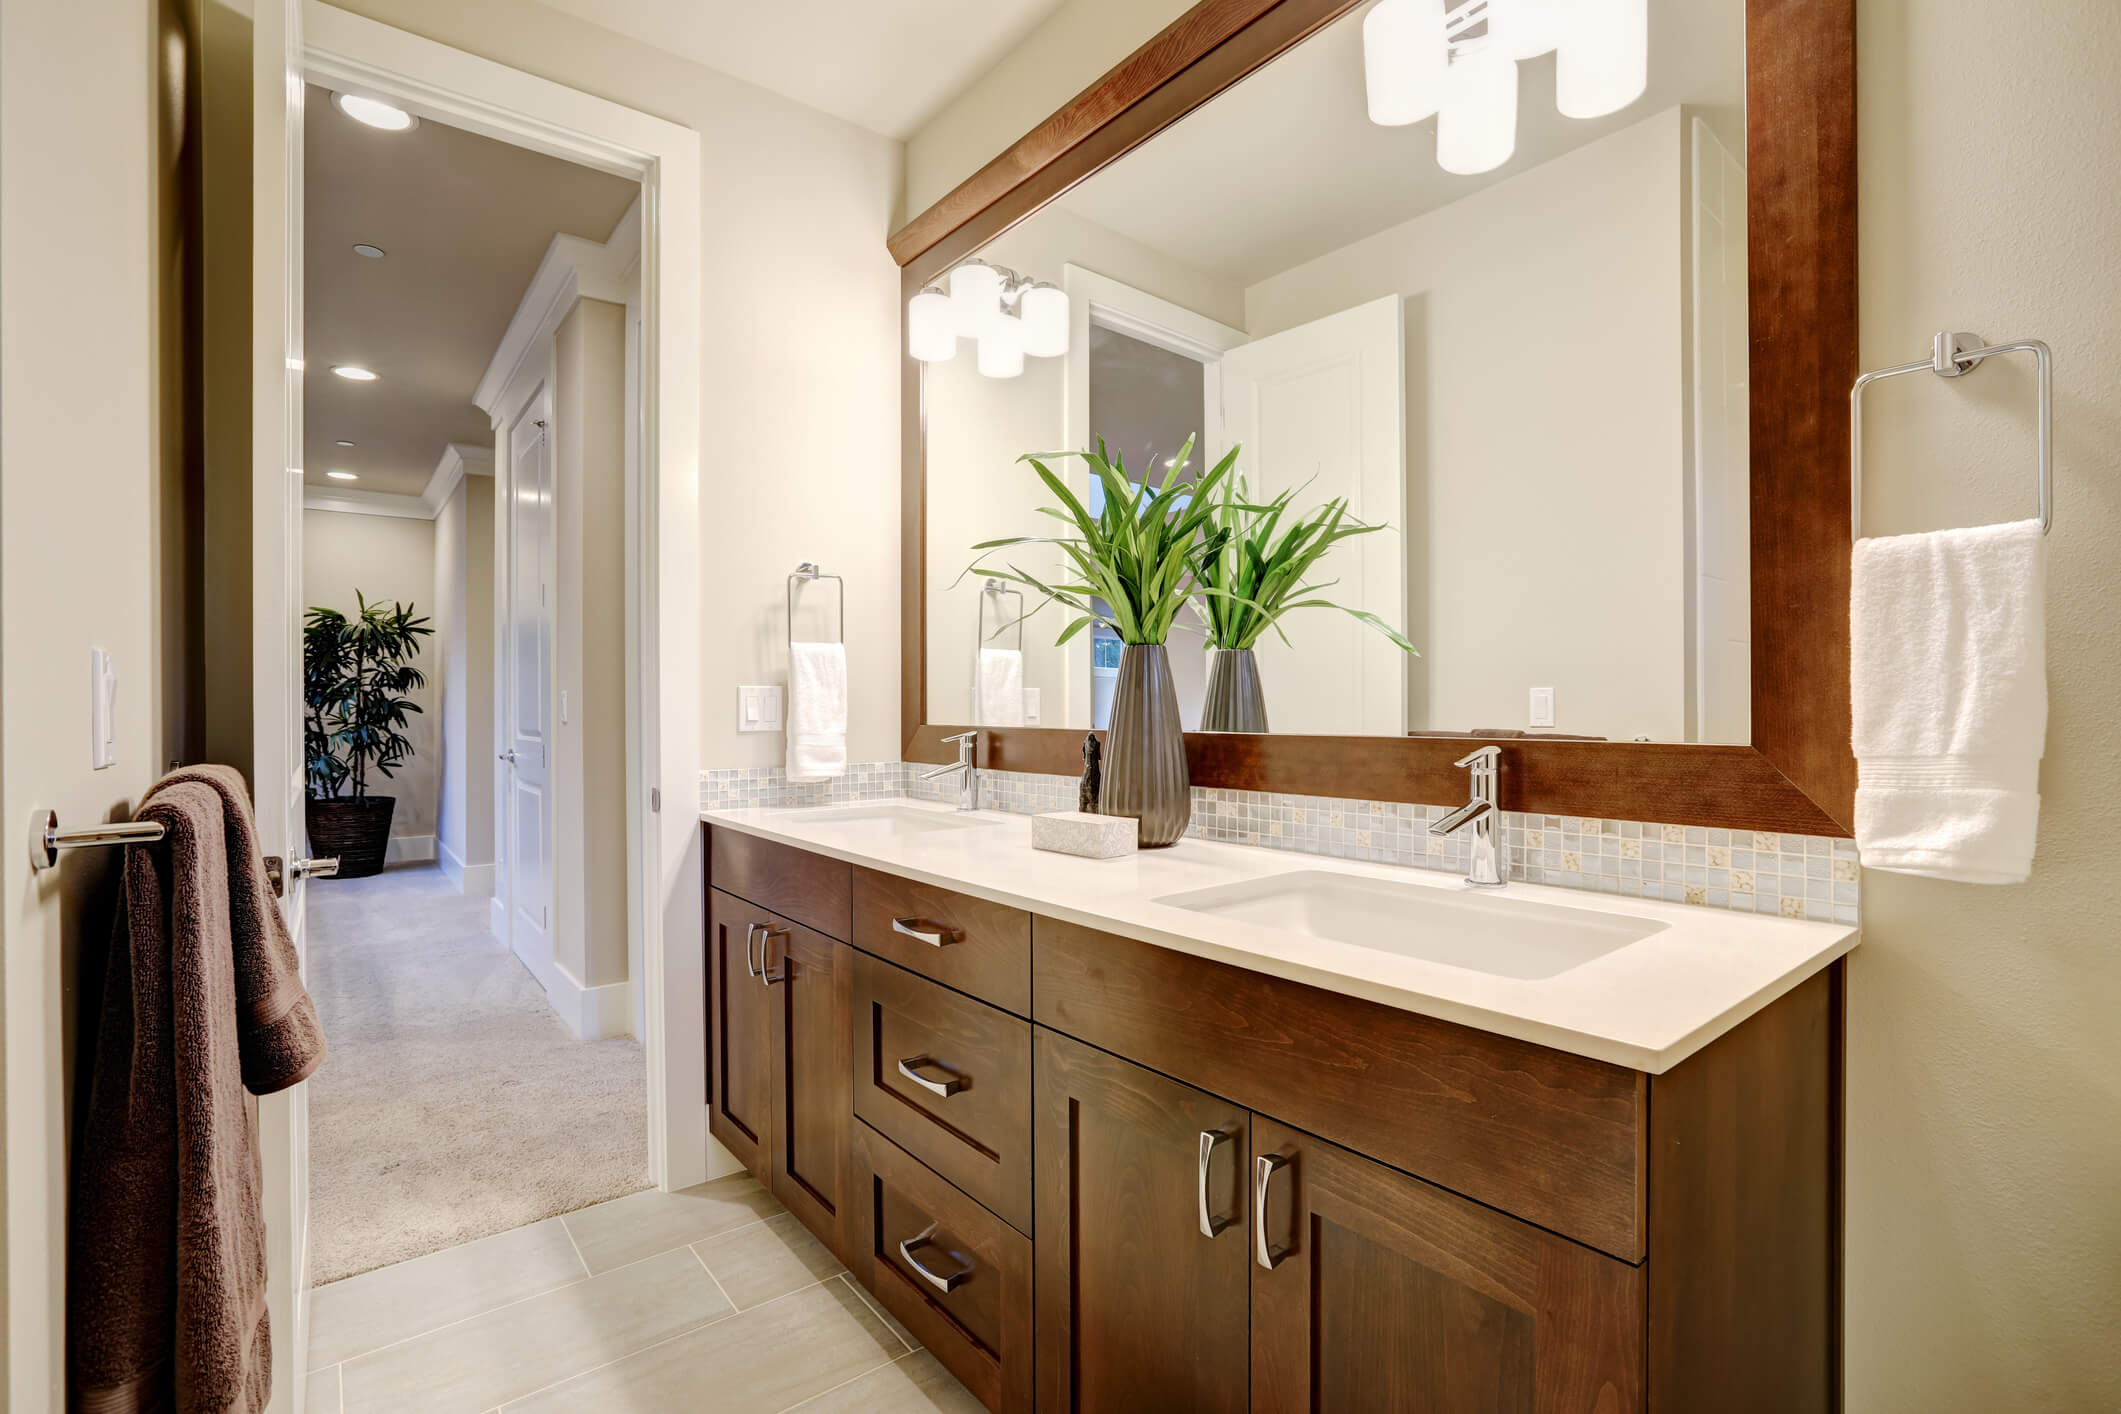 The Pros And Cons Of A Double Sink Vanity